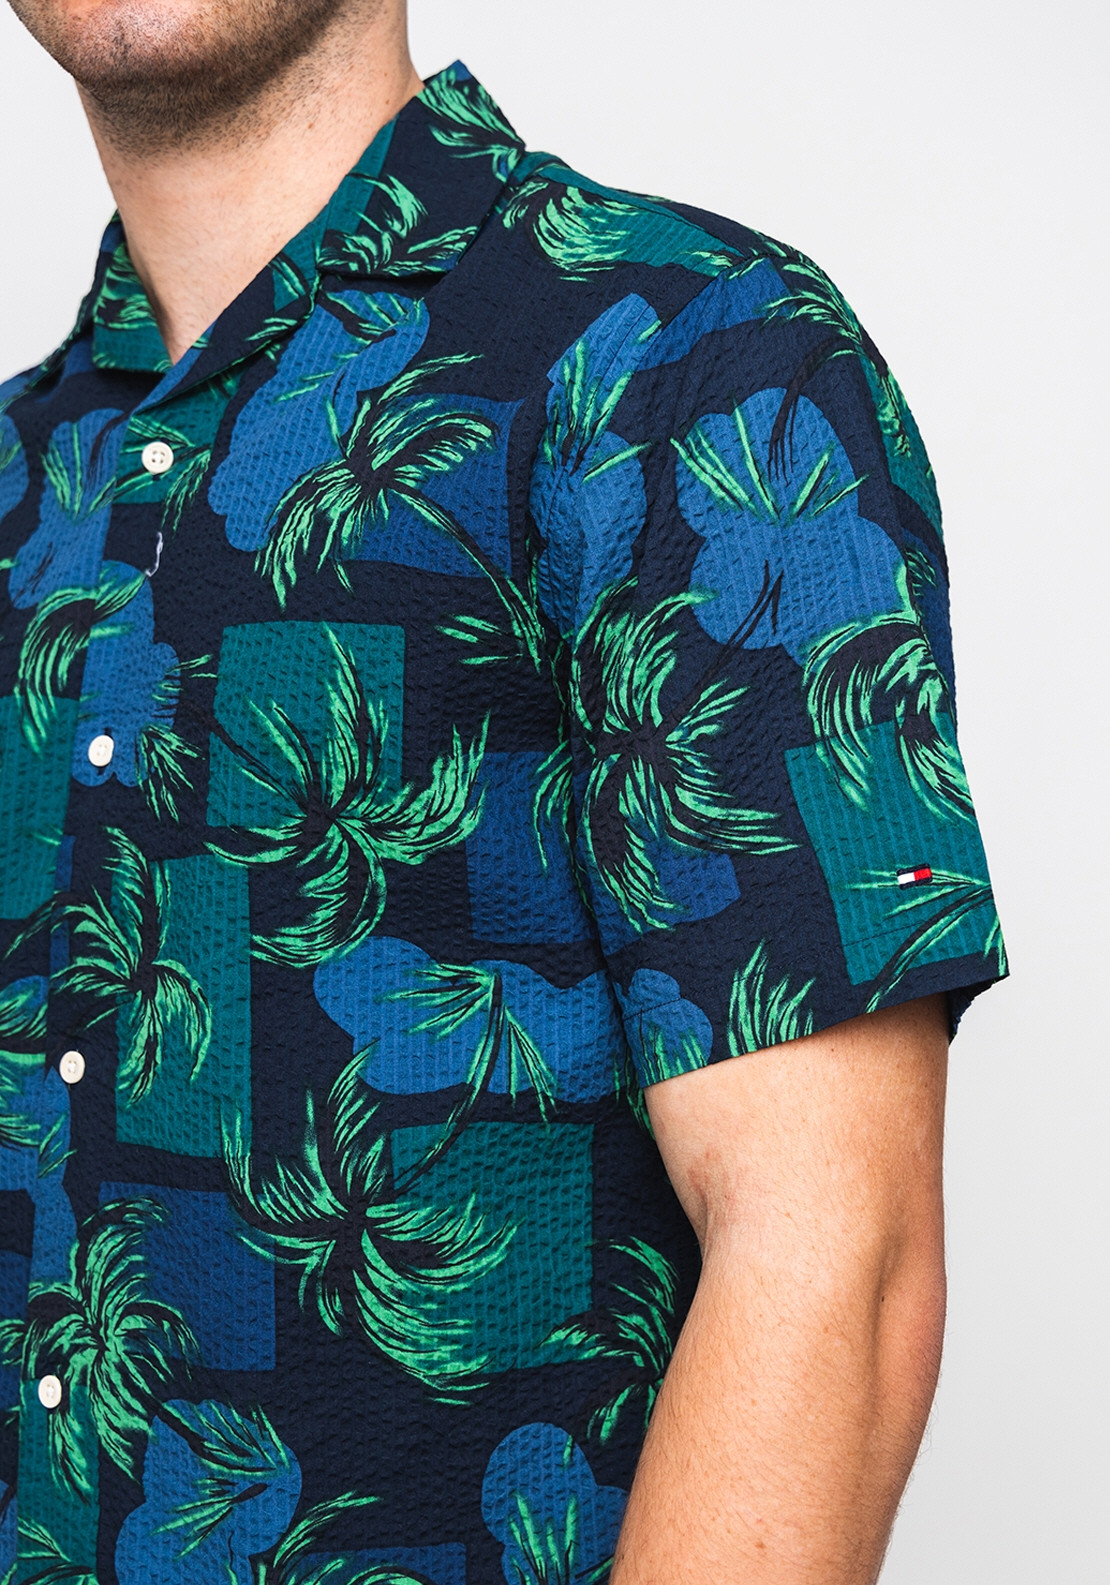 7833b908 Tommy Hilfiger Palm Tree Print Shirt, Night Sky. Be the first to review  this product